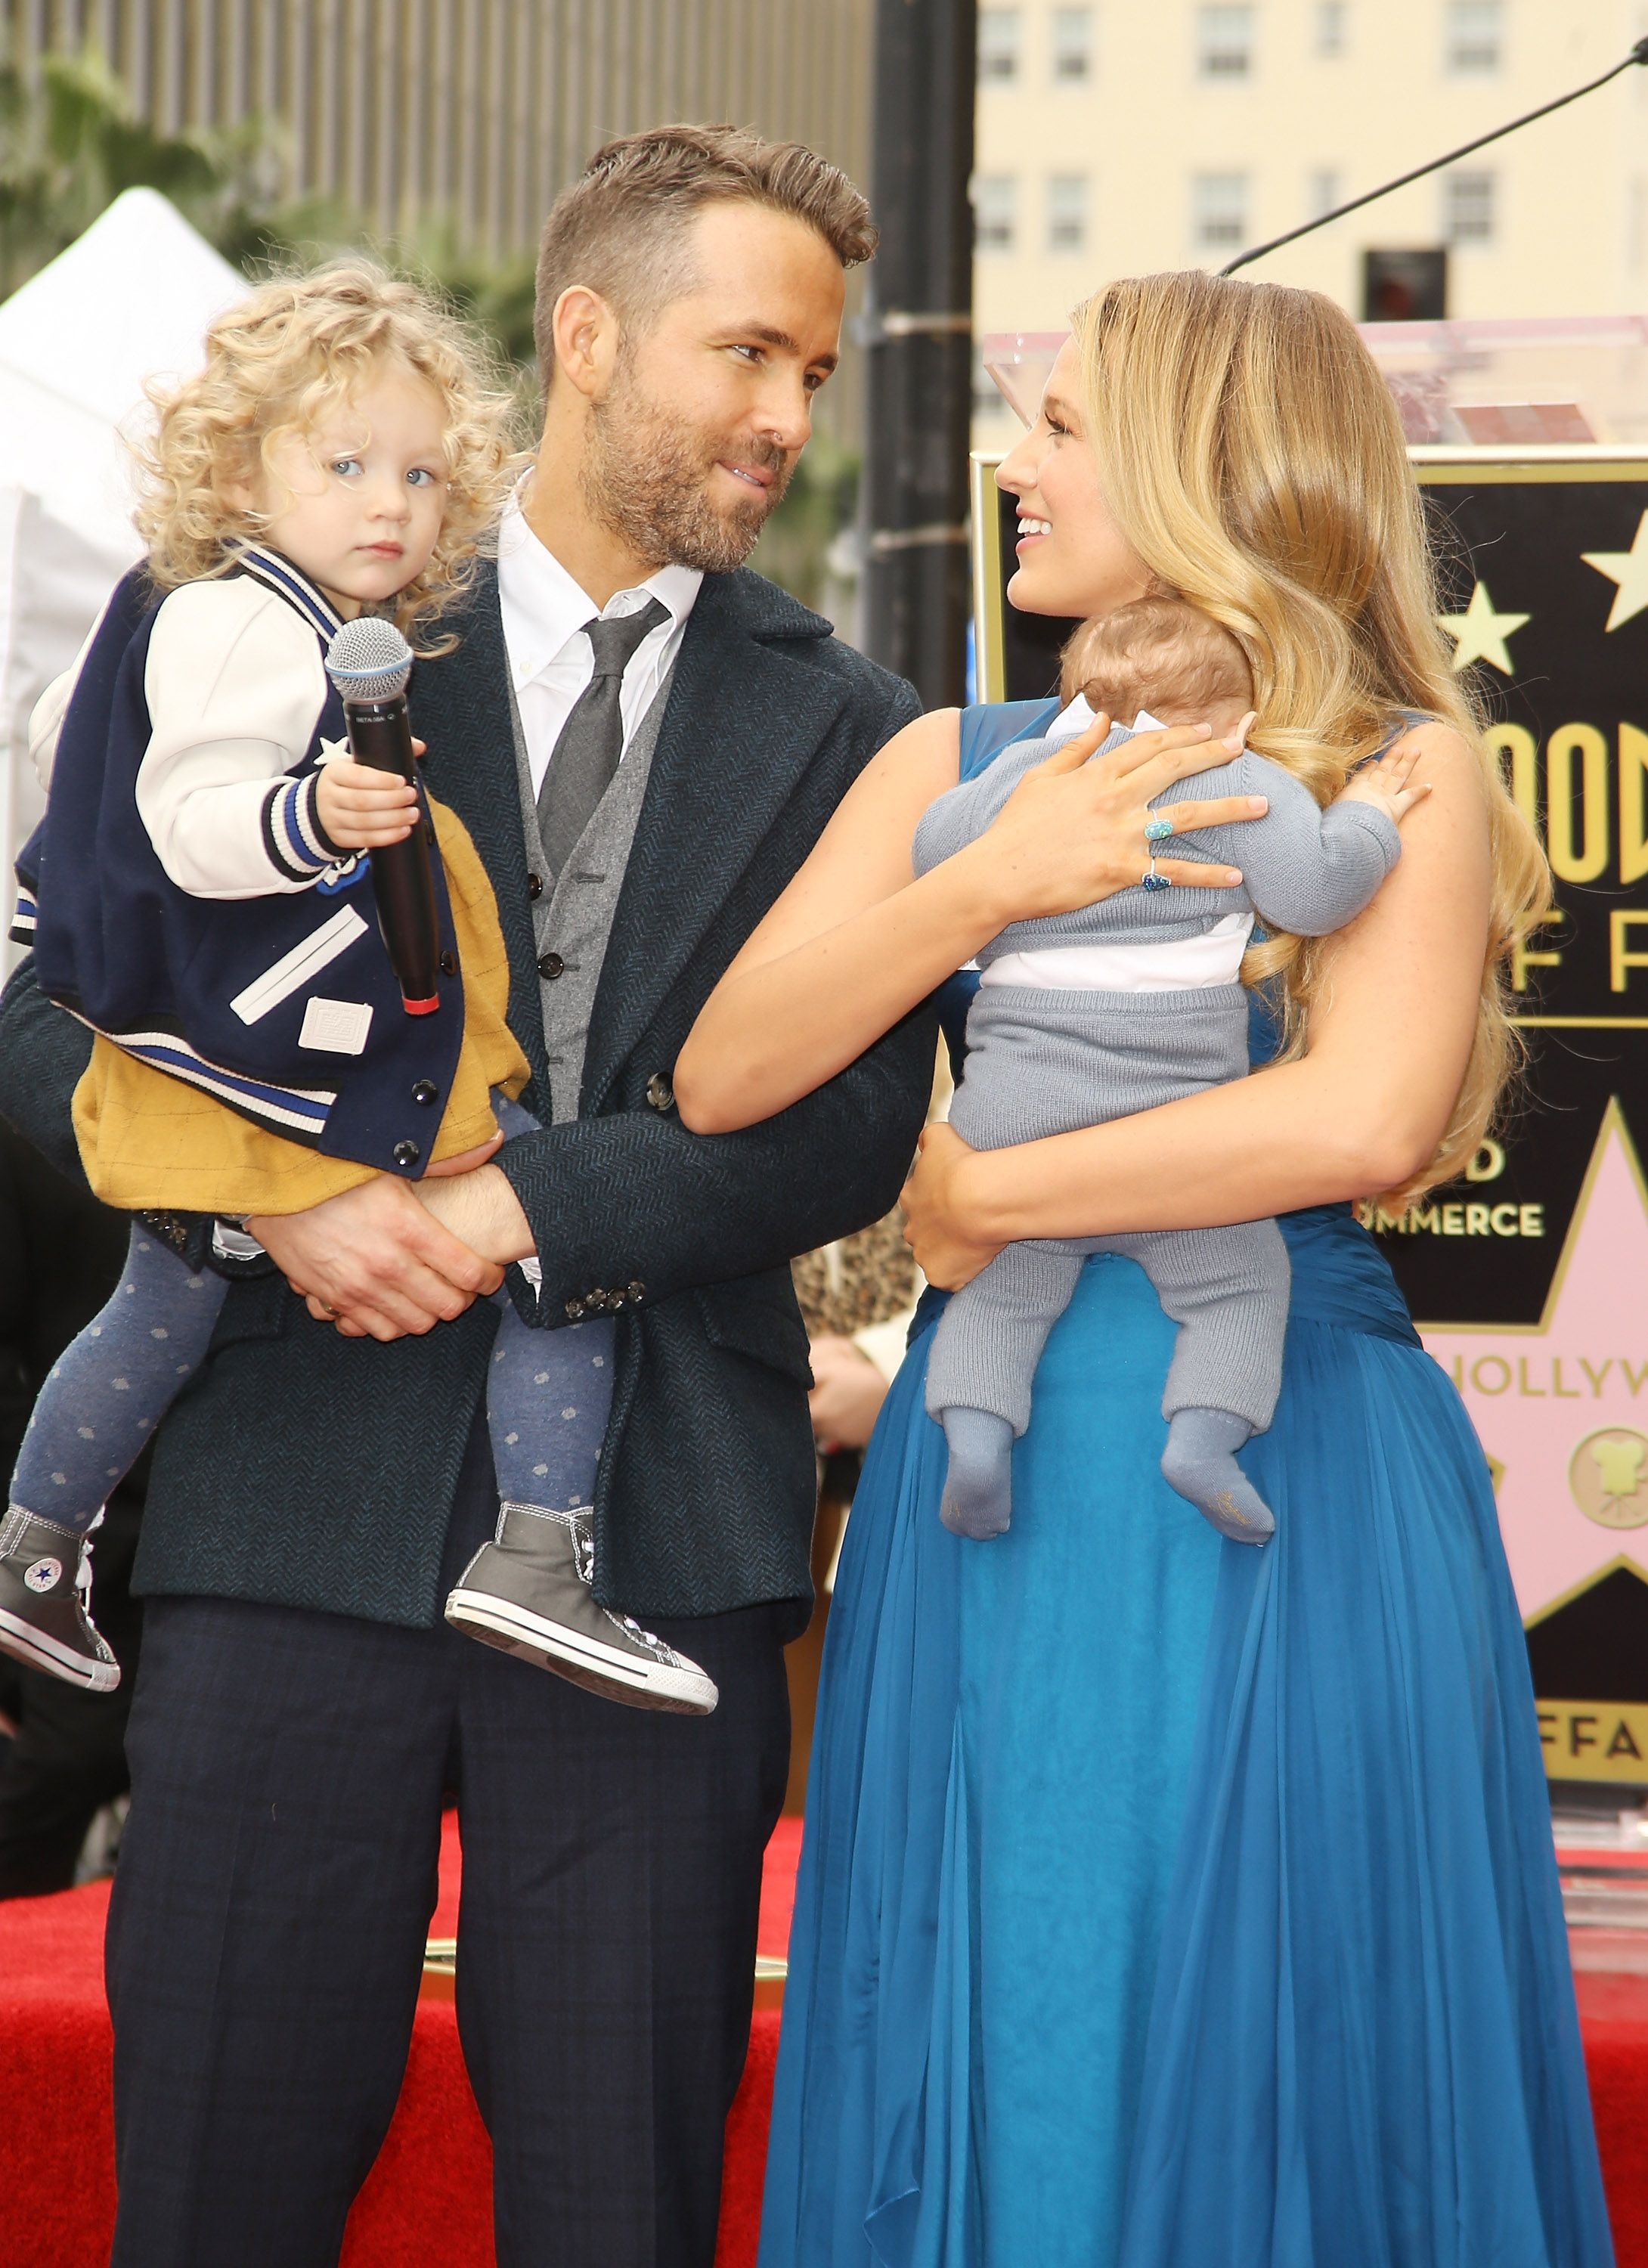 Ryan Reynolds and Blake Lively with their, children attend the ceremony honoring actor Ryan Reynolds with a Star on The Hollywood Walk of Fame held on December 15, 2016 in Hollywood, California | Photo: Getty Images